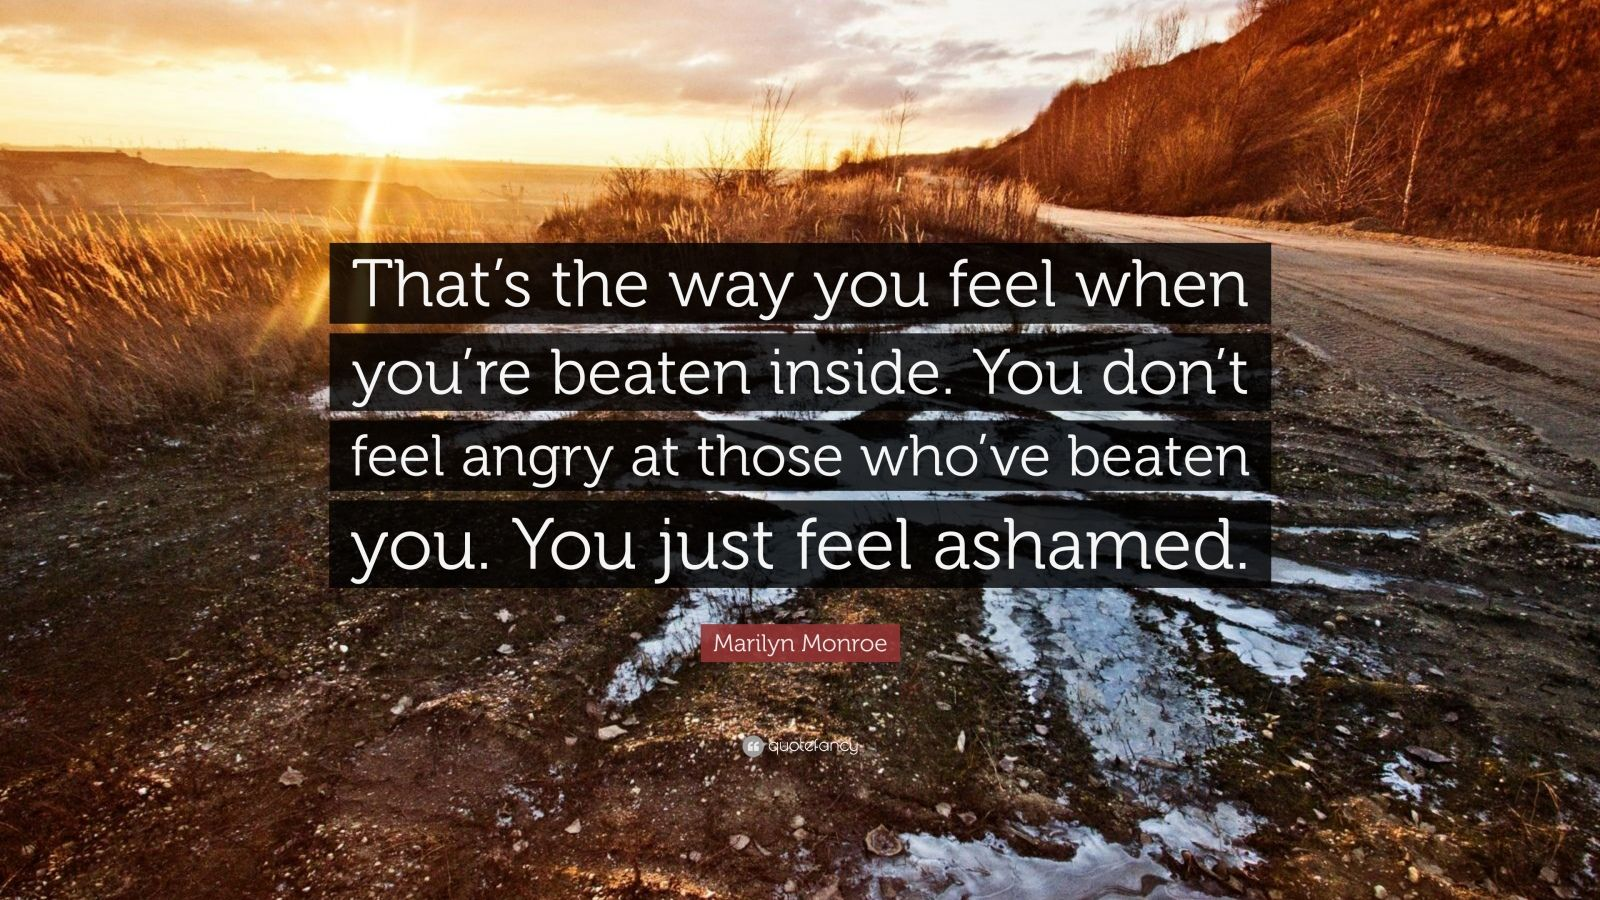 """Marilyn Monroe Quote: """"That's the way you feel when you're beaten inside. You don't feel angry at those who've beaten you. You just feel ashamed."""""""